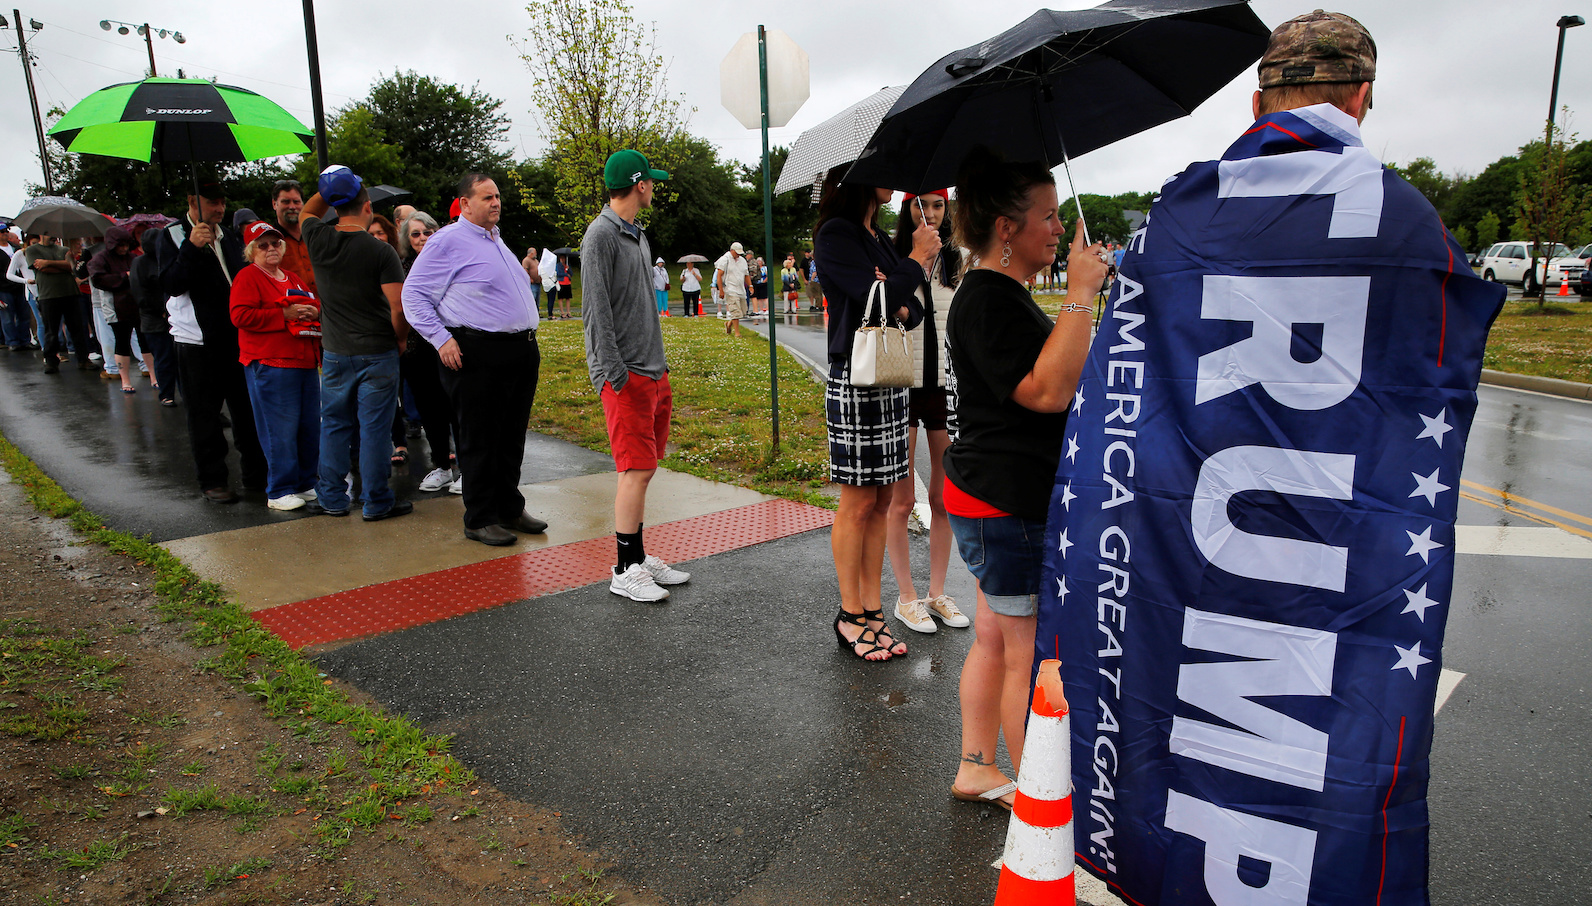 Alex Fraser wears a campaign banner as a cape while waiting in line for a campaign rally with U.S. Republican presidential candidate Donald Trump in Bangor, Maine, U.S. June 29, 2016. REUTERS/Brian Snyder - RTX2IX8U